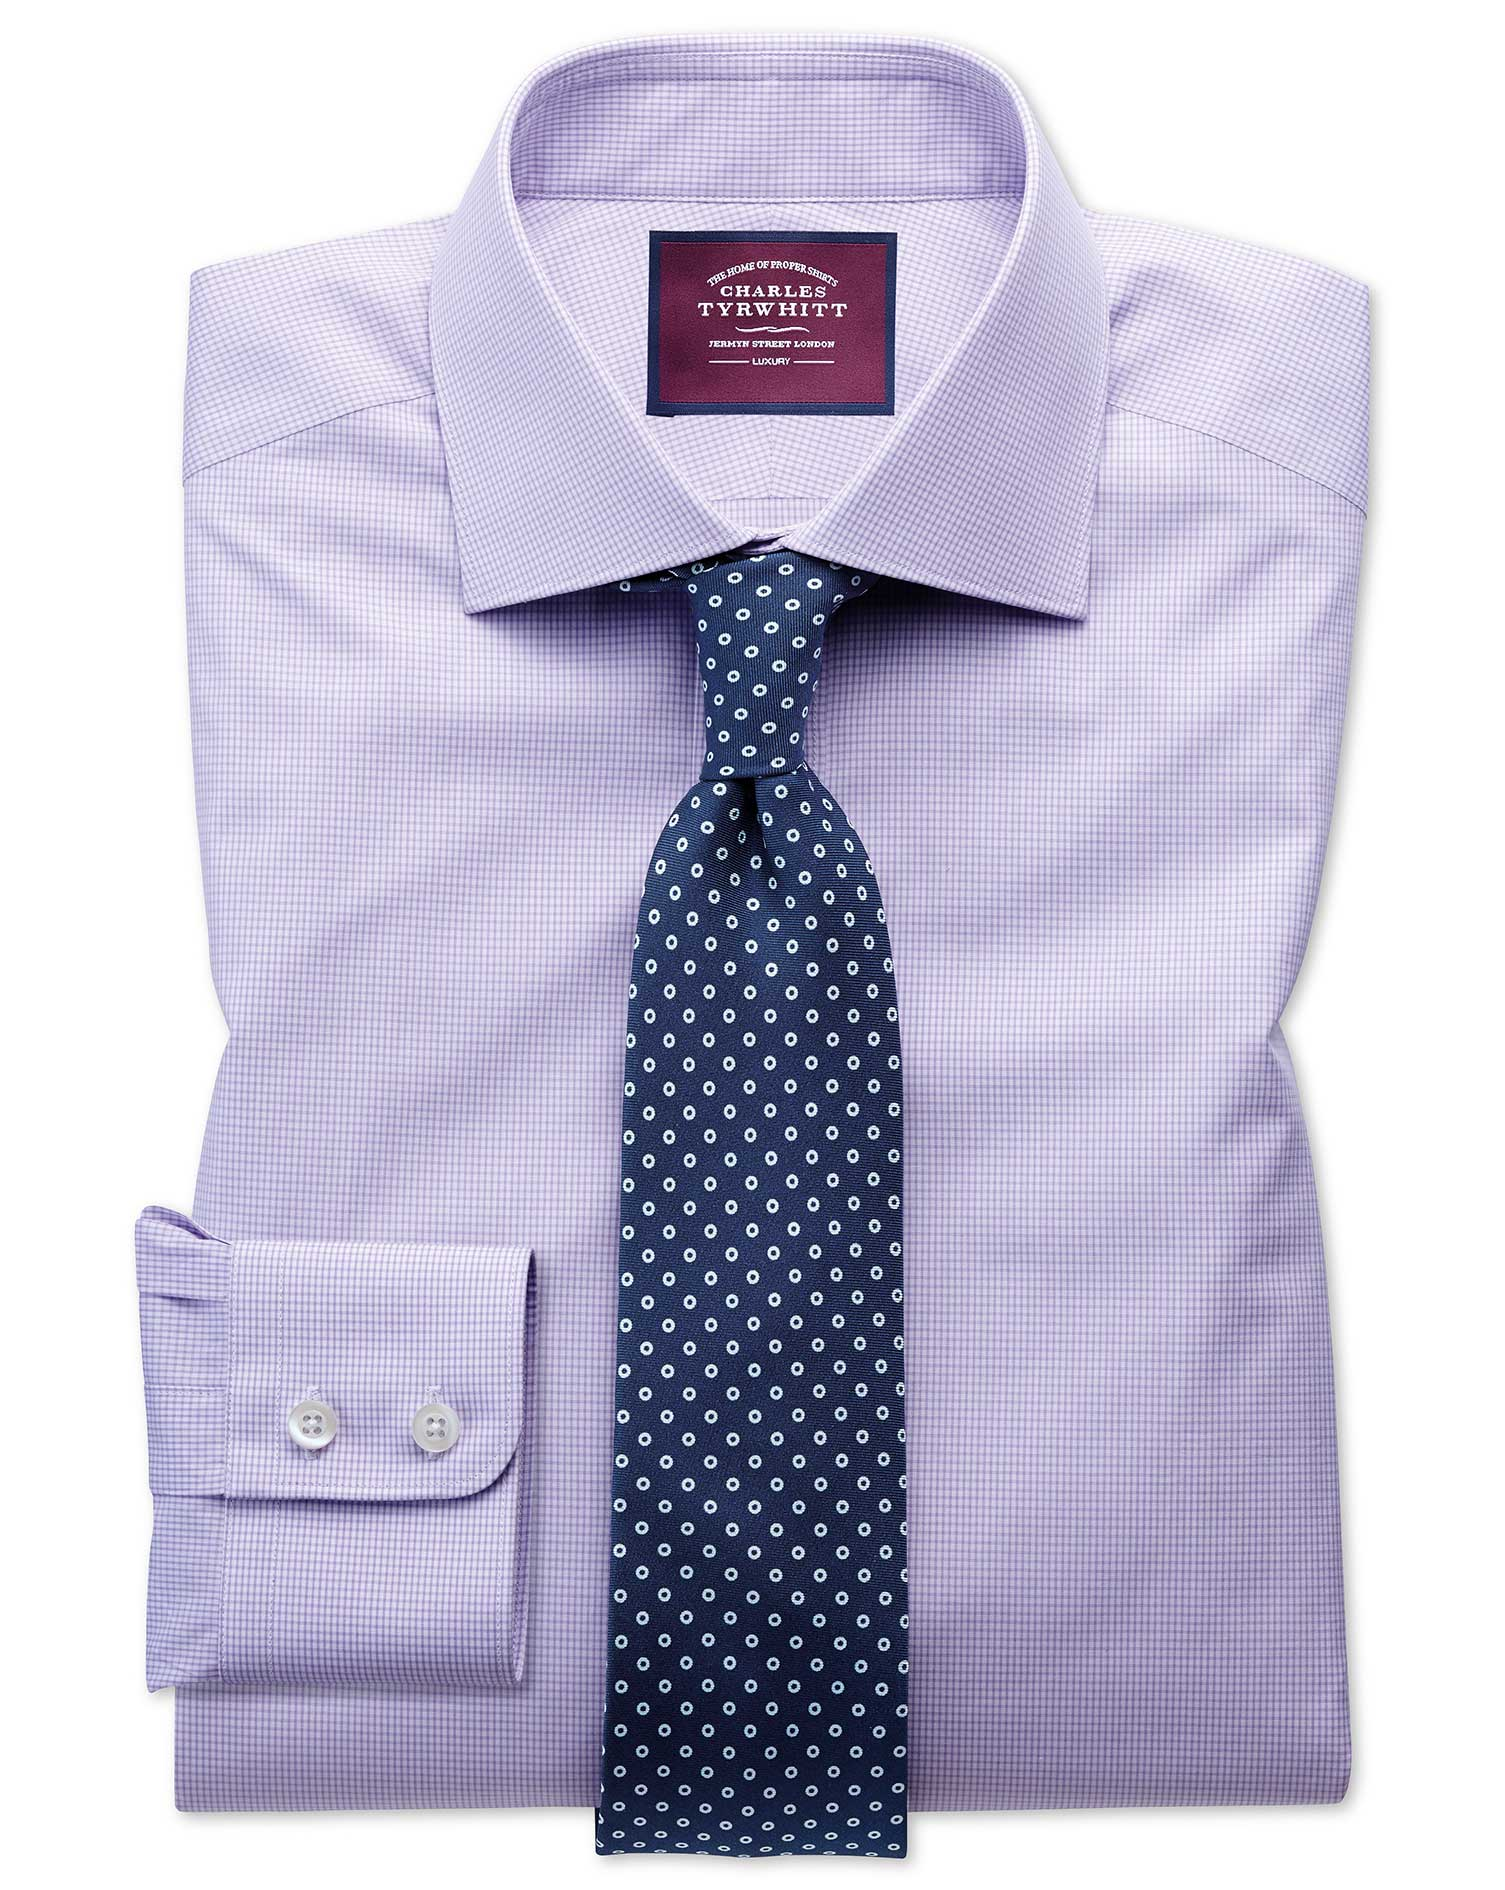 Slim Fit Semi-Cutaway Luxury Poplin Lilac and White Egyptian Cotton Formal Shirt Single Cuff Size 18